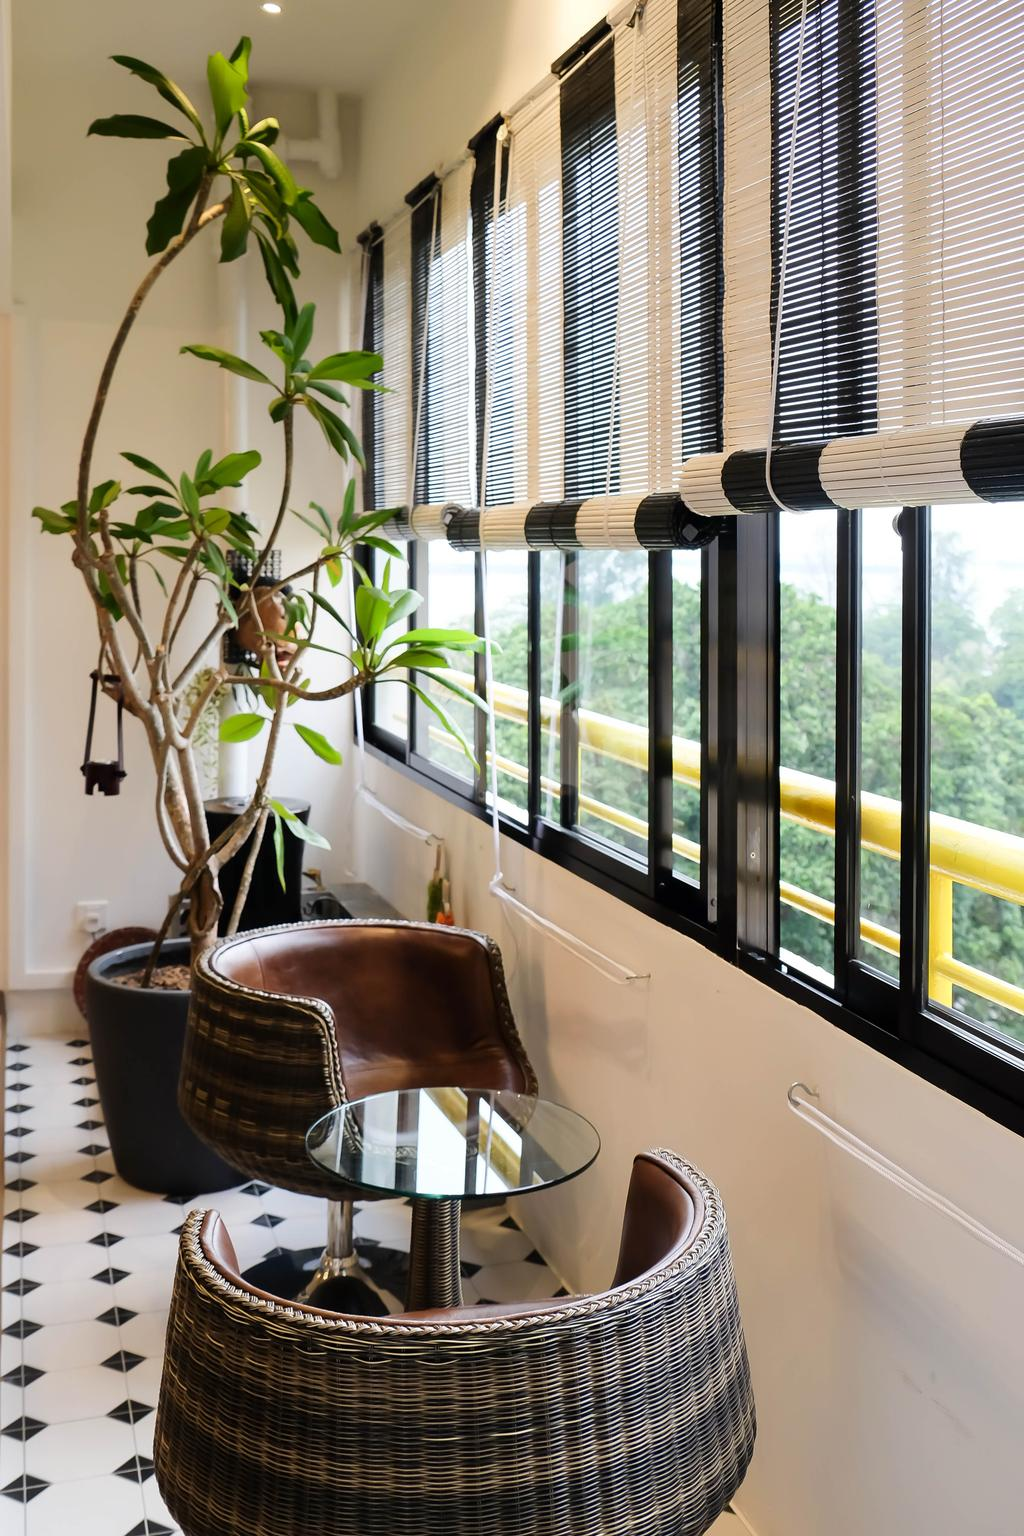 Eclectic, Condo, Balcony, Neptune Court, Interior Designer, Fifth Avenue Interior, Roller Blinds, Garden Blinds, Outdoor Stools, Cane Chair, Colonial Tiles, Black And White, White And Black, Potted Plants, Flora, Jar, Plant, Potted Plant, Pottery, Vase